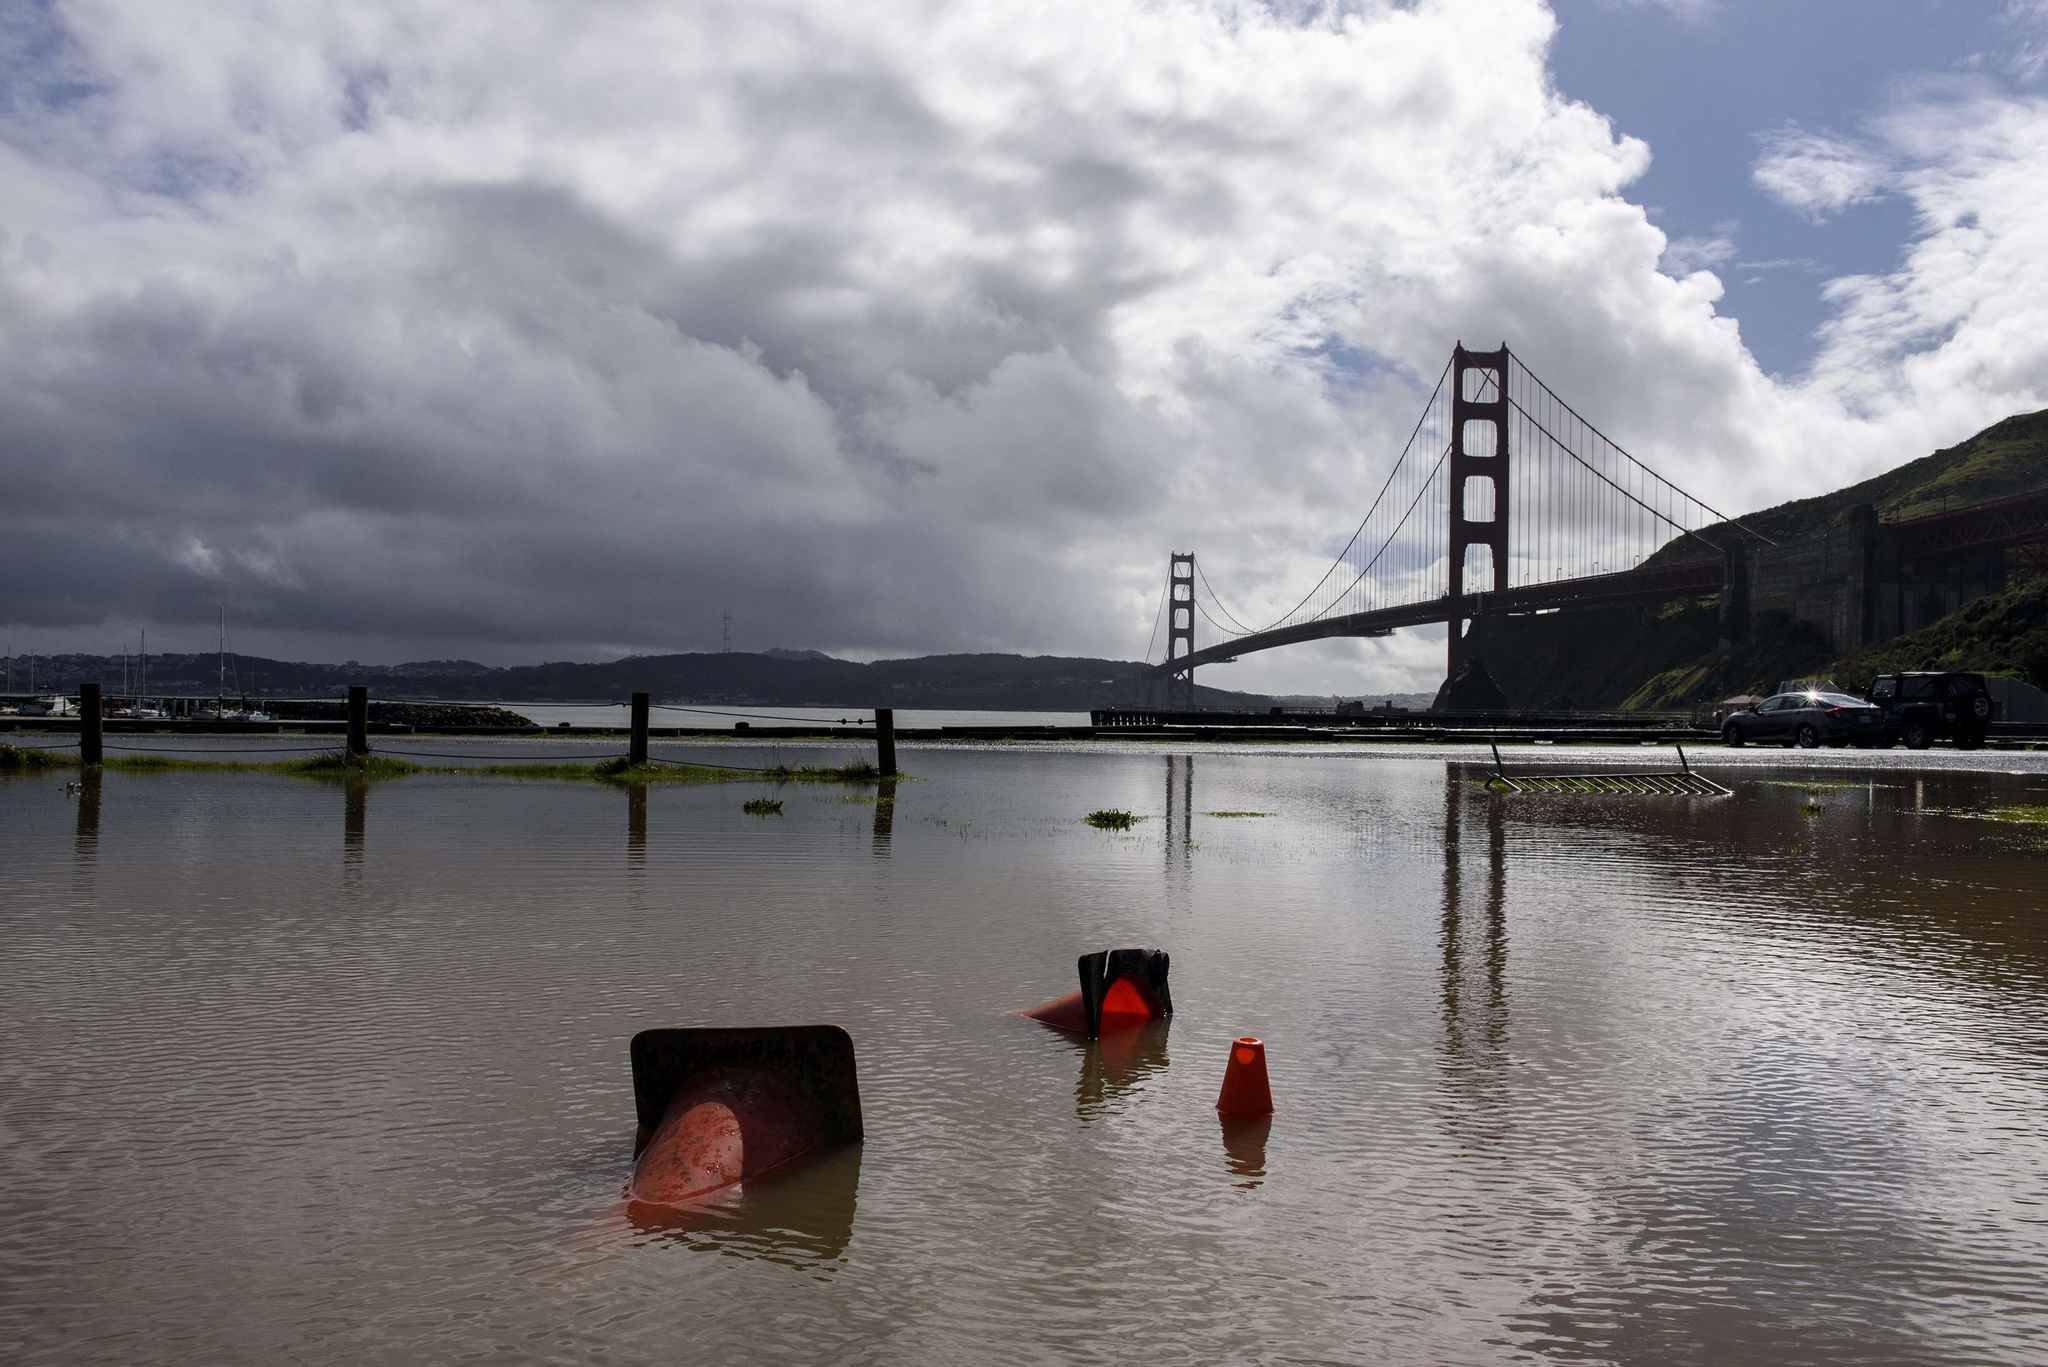 Safety cones float in a puddle in the Horseshoe Bay parking lot as storm clouds hang over the Golden Gate Bridge, in Sausalito, Calif., Thursday, Feb. 14, 2019. Waves of heavy rain pounded California on Thursday, filling normally dry creeks and rivers with muddy torrents, flooding roadways and forcing residents to flee their homes in communities scorched by wildfires. (AP Photo/Michael Short)/FX435/19045806820080/1902150050